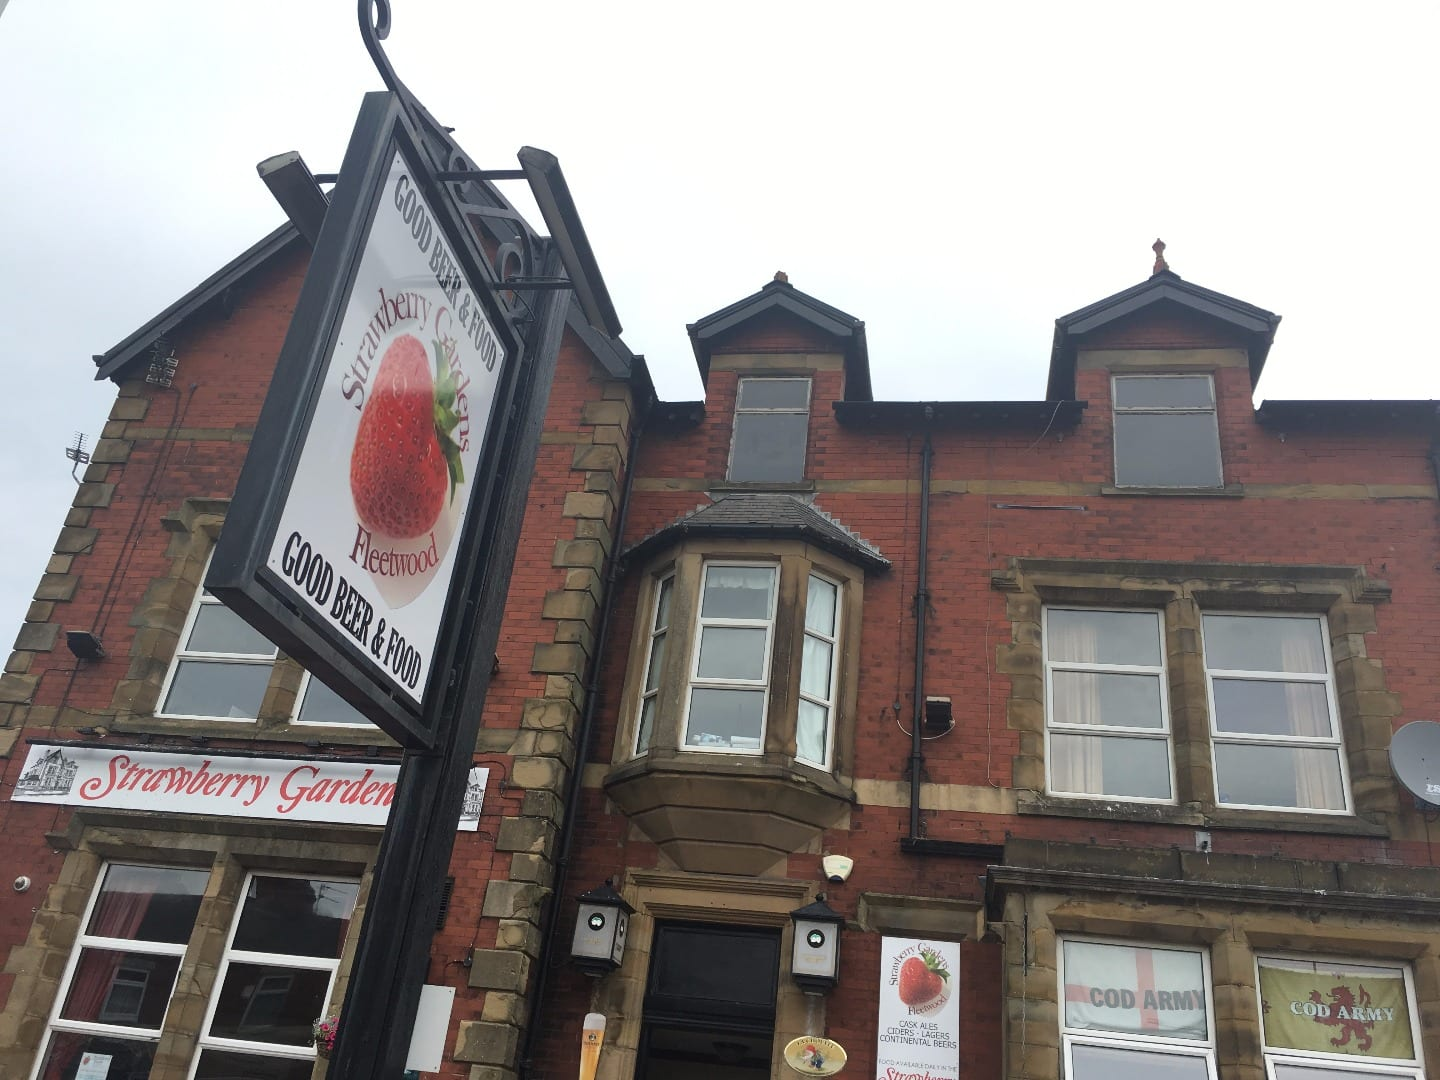 Strawberry Gardens pub and bistro, Fleetwood